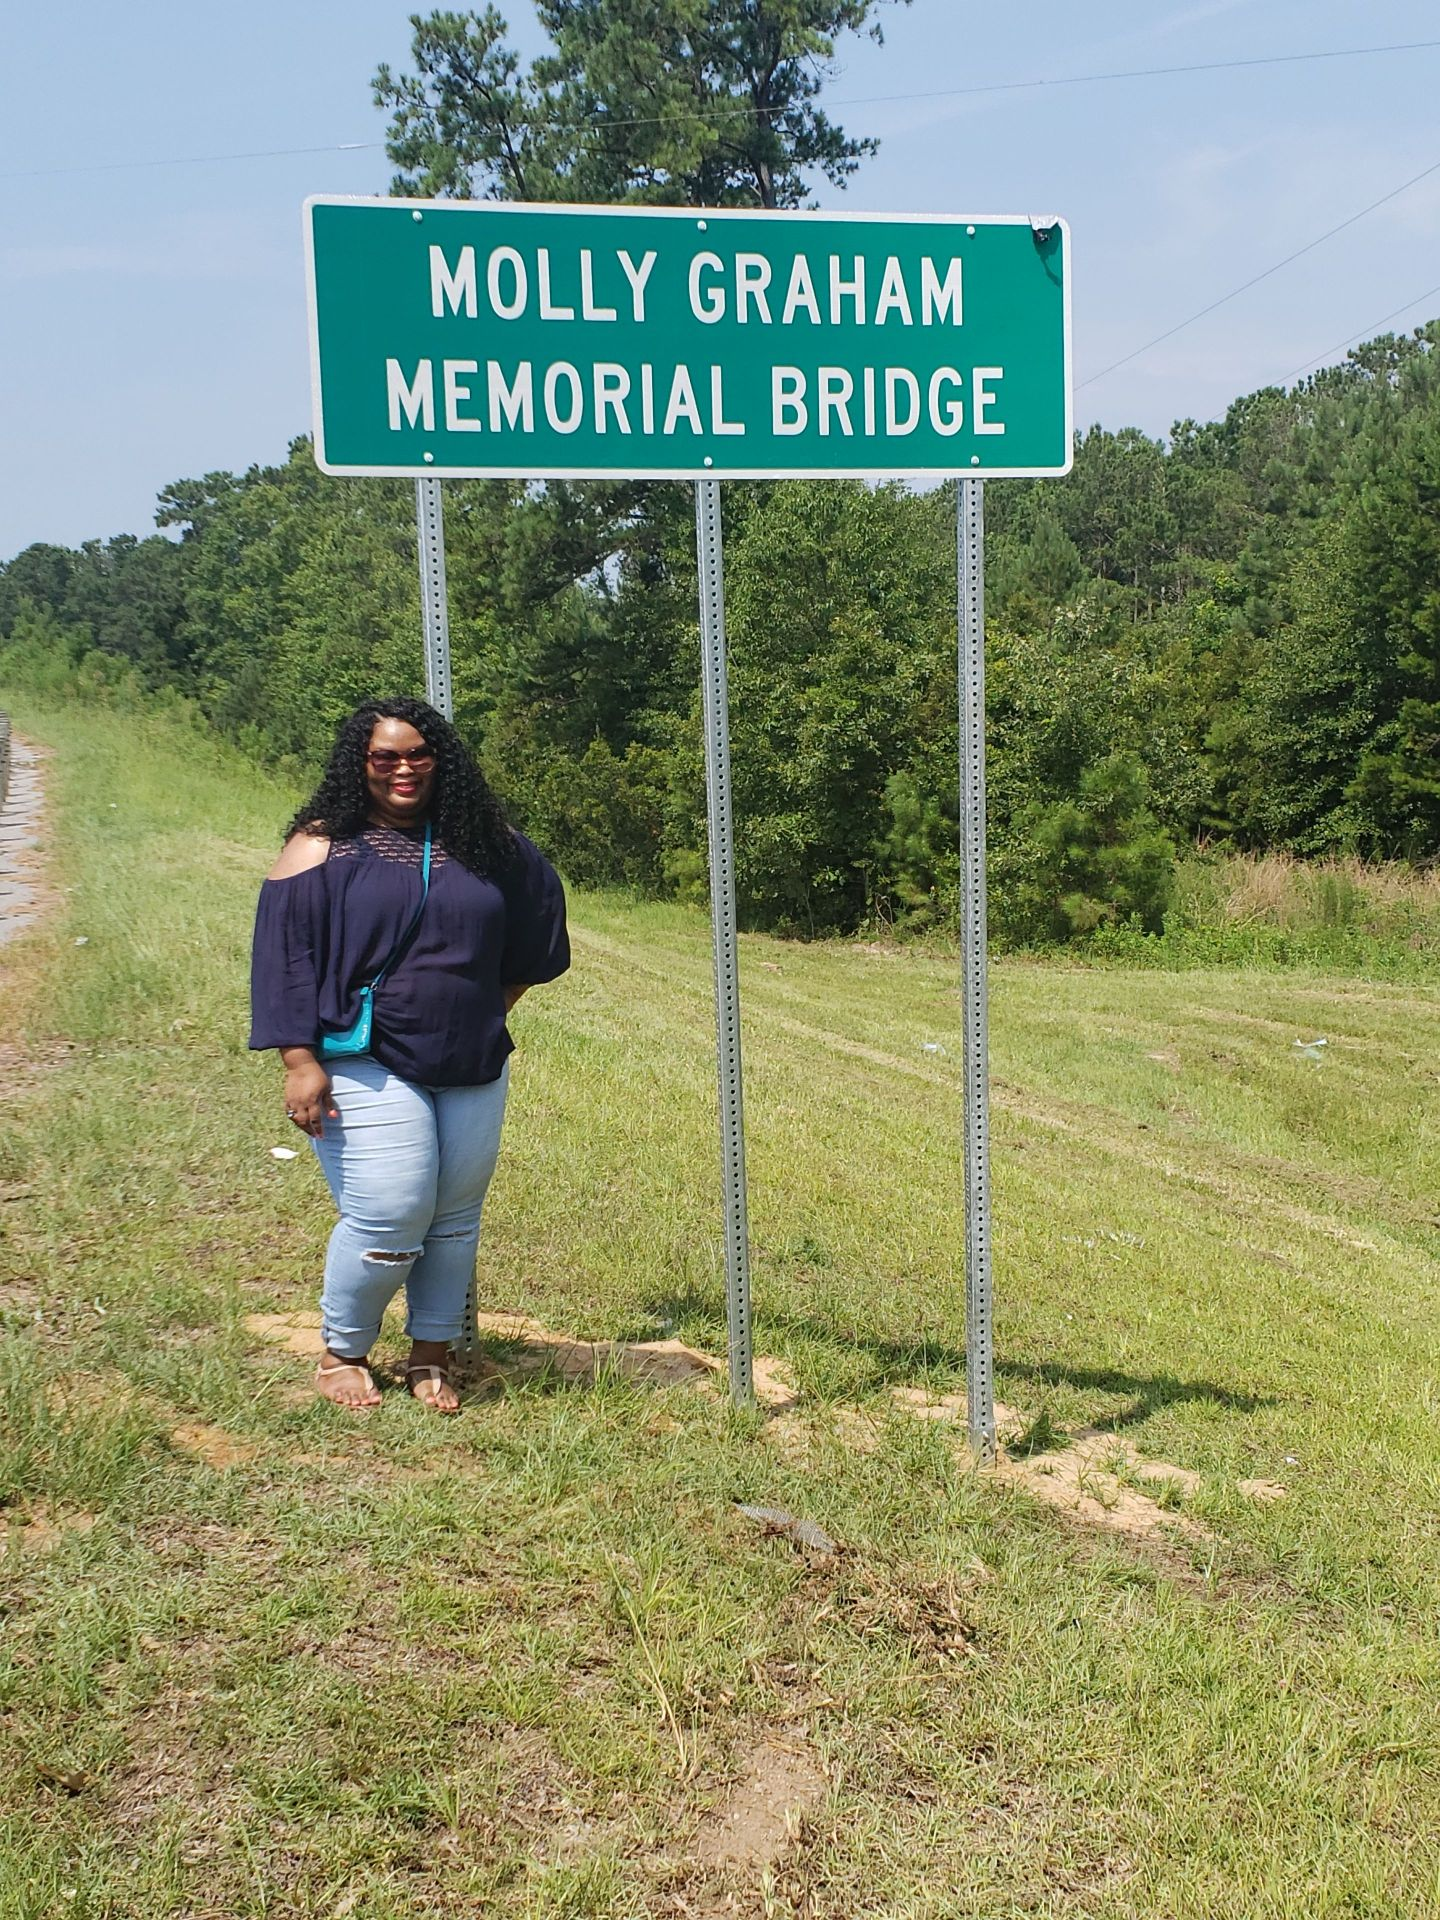 20190704_112001-1440x1920 South Carolina Bridge Dedicated to Molly Graham, African American Naturopathic Herb Doctor